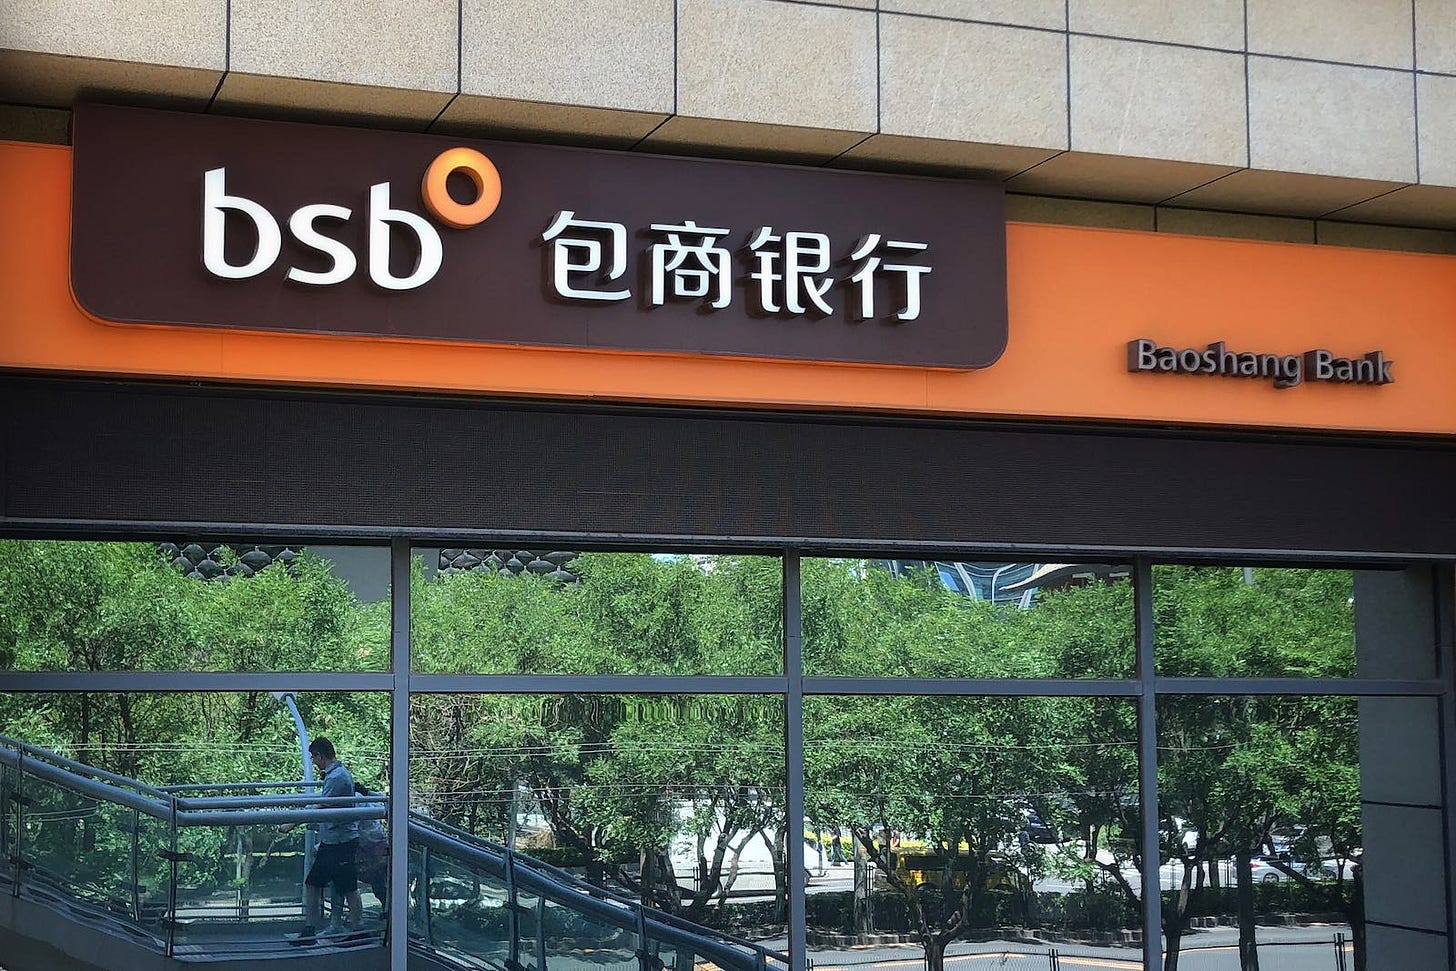 China's financial risk and lessons from the Baoshang Bank collapse